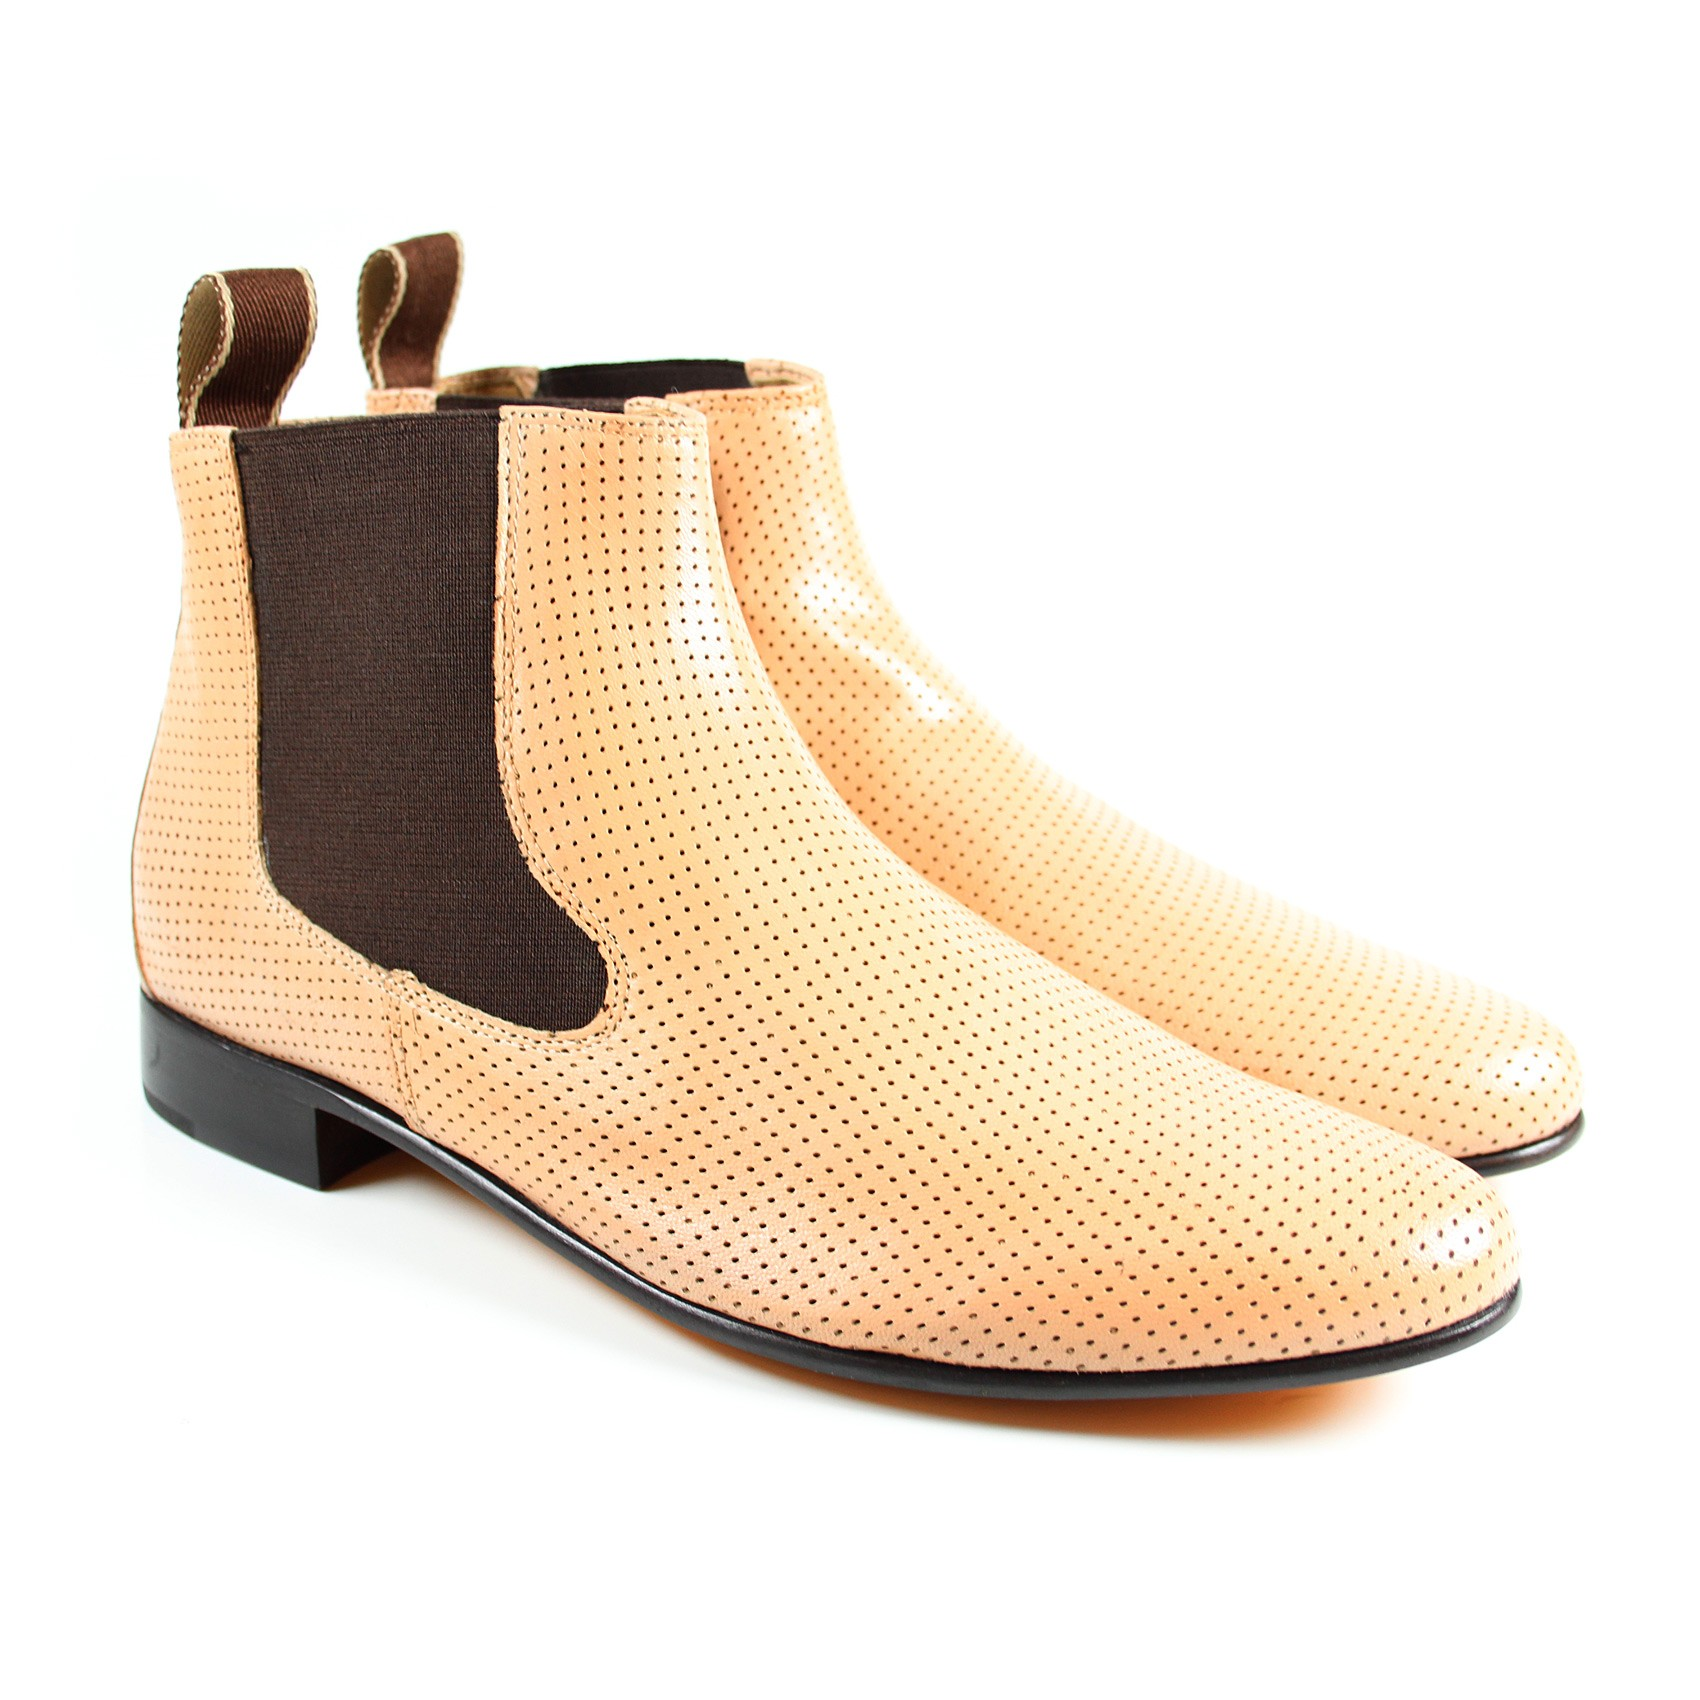 mod shoes ladies 60s chelsea boots amy-5-paston-perfo-sand_1_1